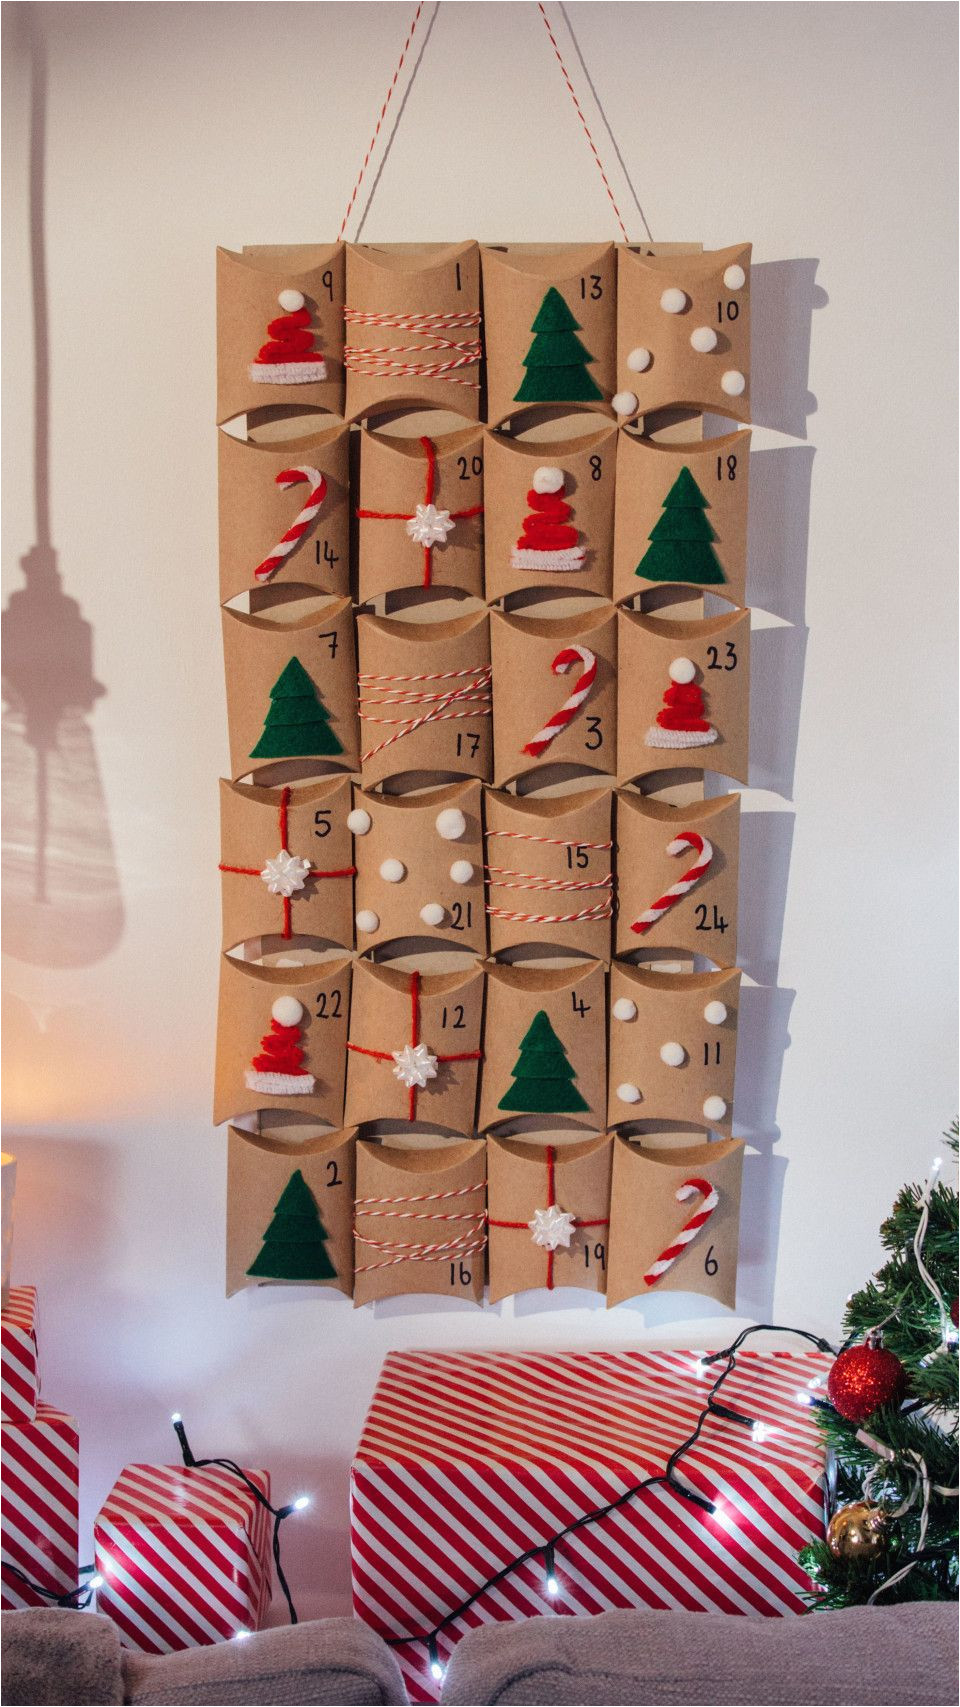 recipe with video instructions count down to the big day with this home made advent calendar ingredients cereal box 24 pillow boxes velcro red